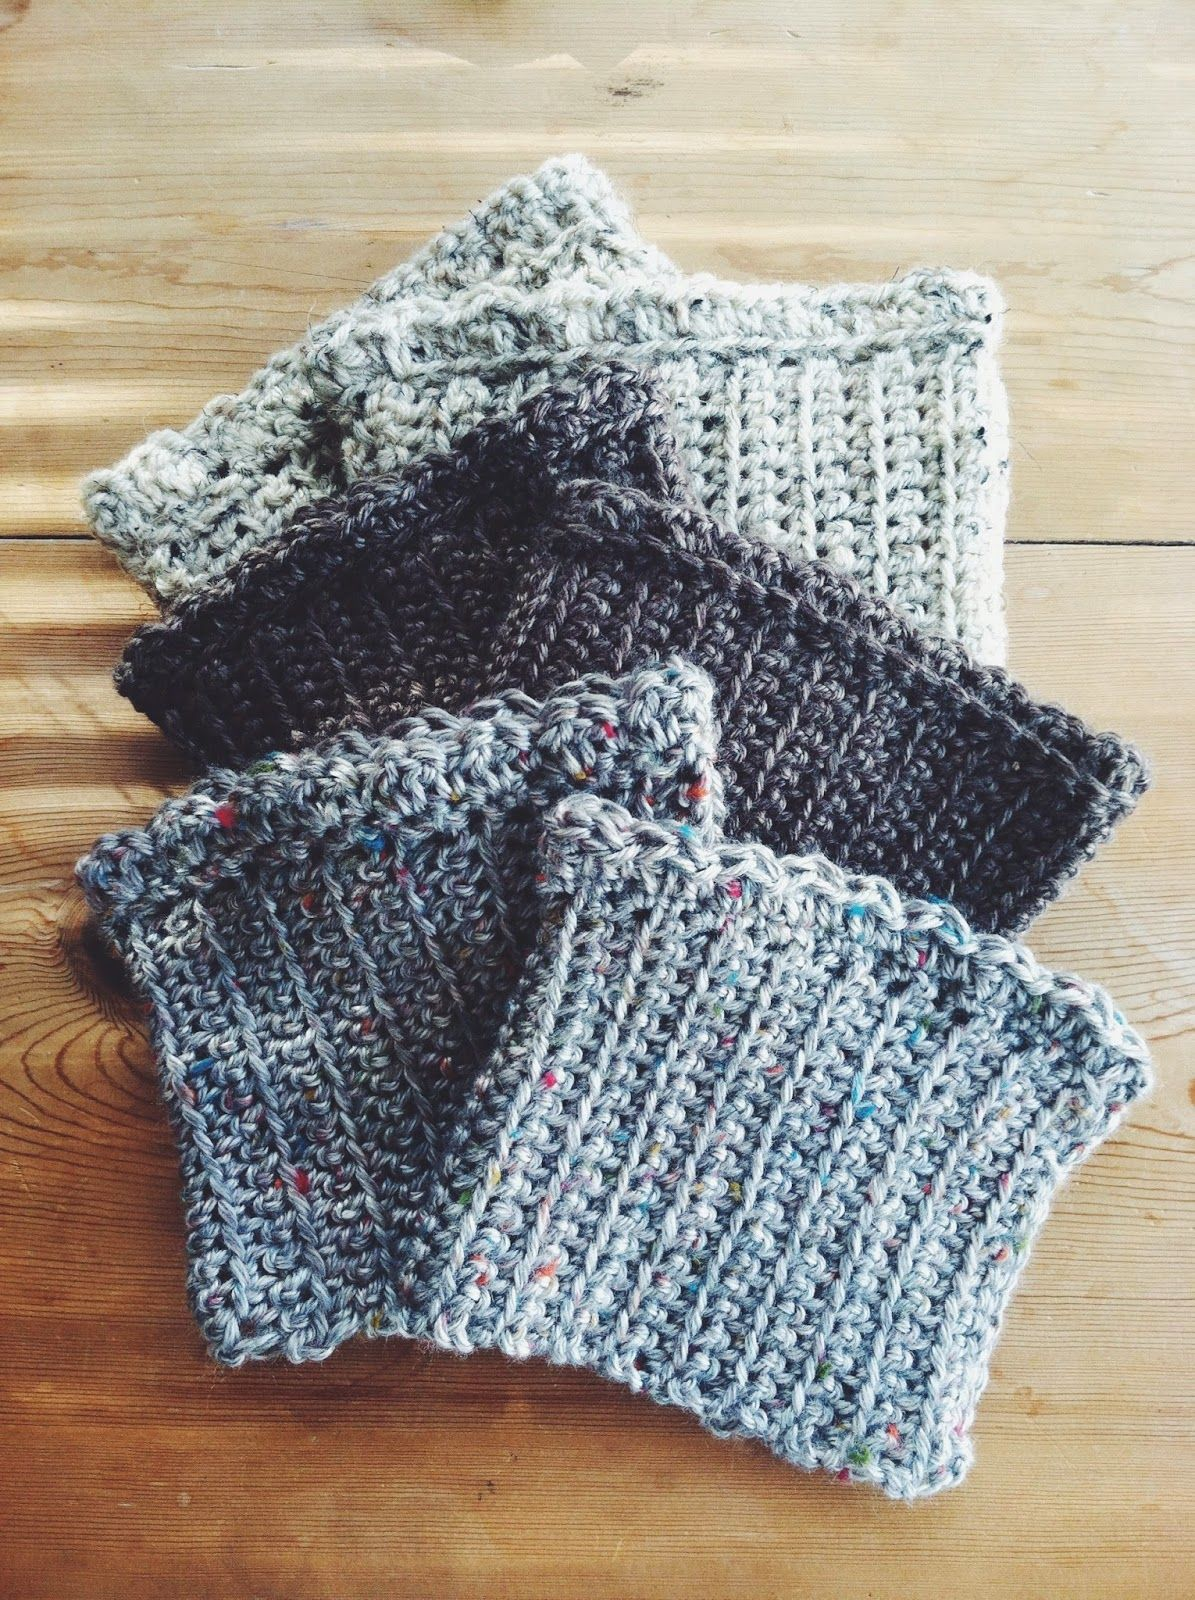 Free Crochet Patterns For Boot Warmers : Crochet / Boot Cuffs & Leg Warmers on Pinterest Boot ...